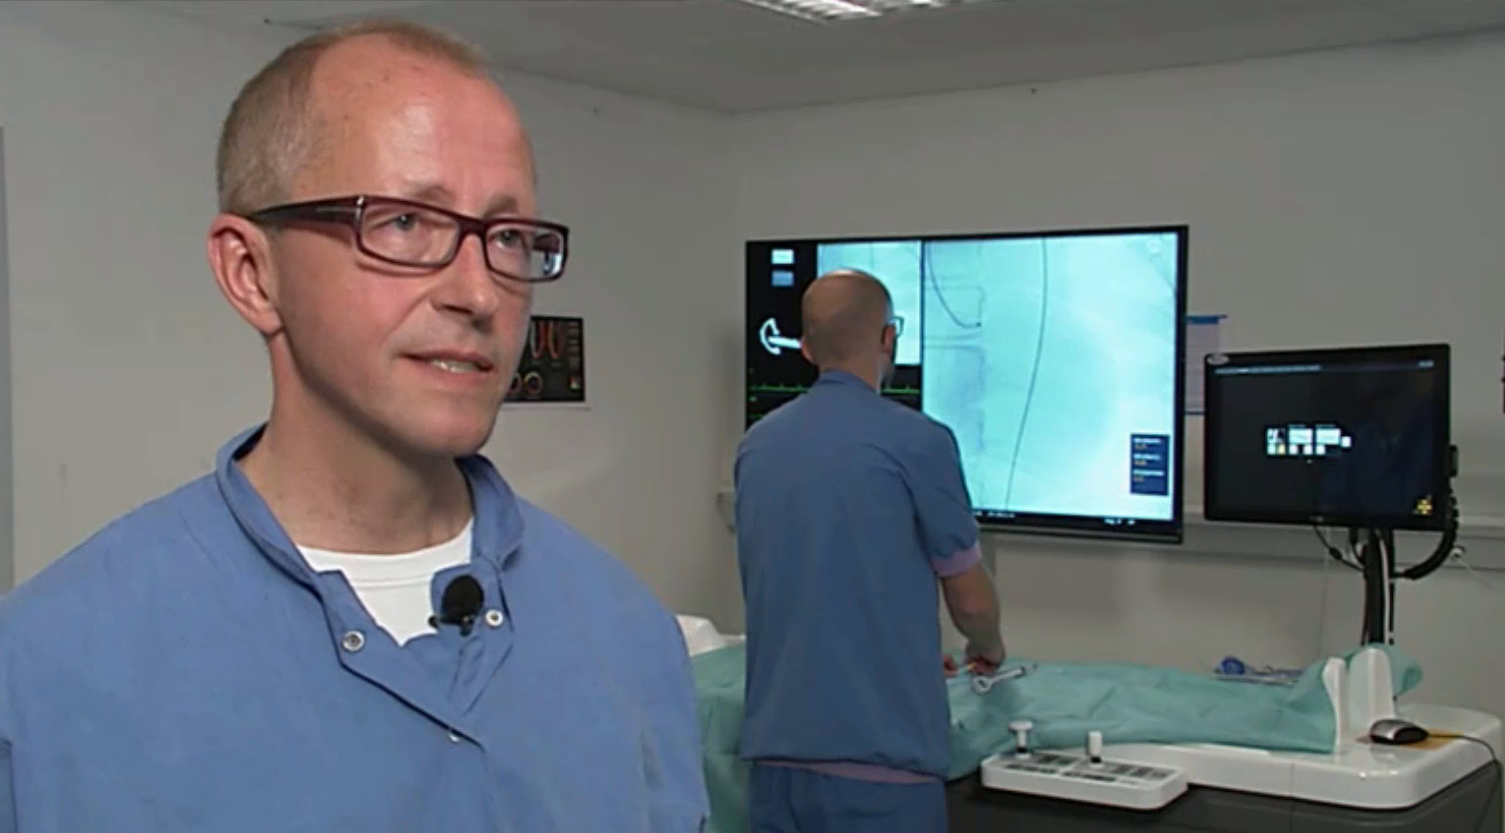 Mentice VIST-Lab at Aalborg University Hospital Video